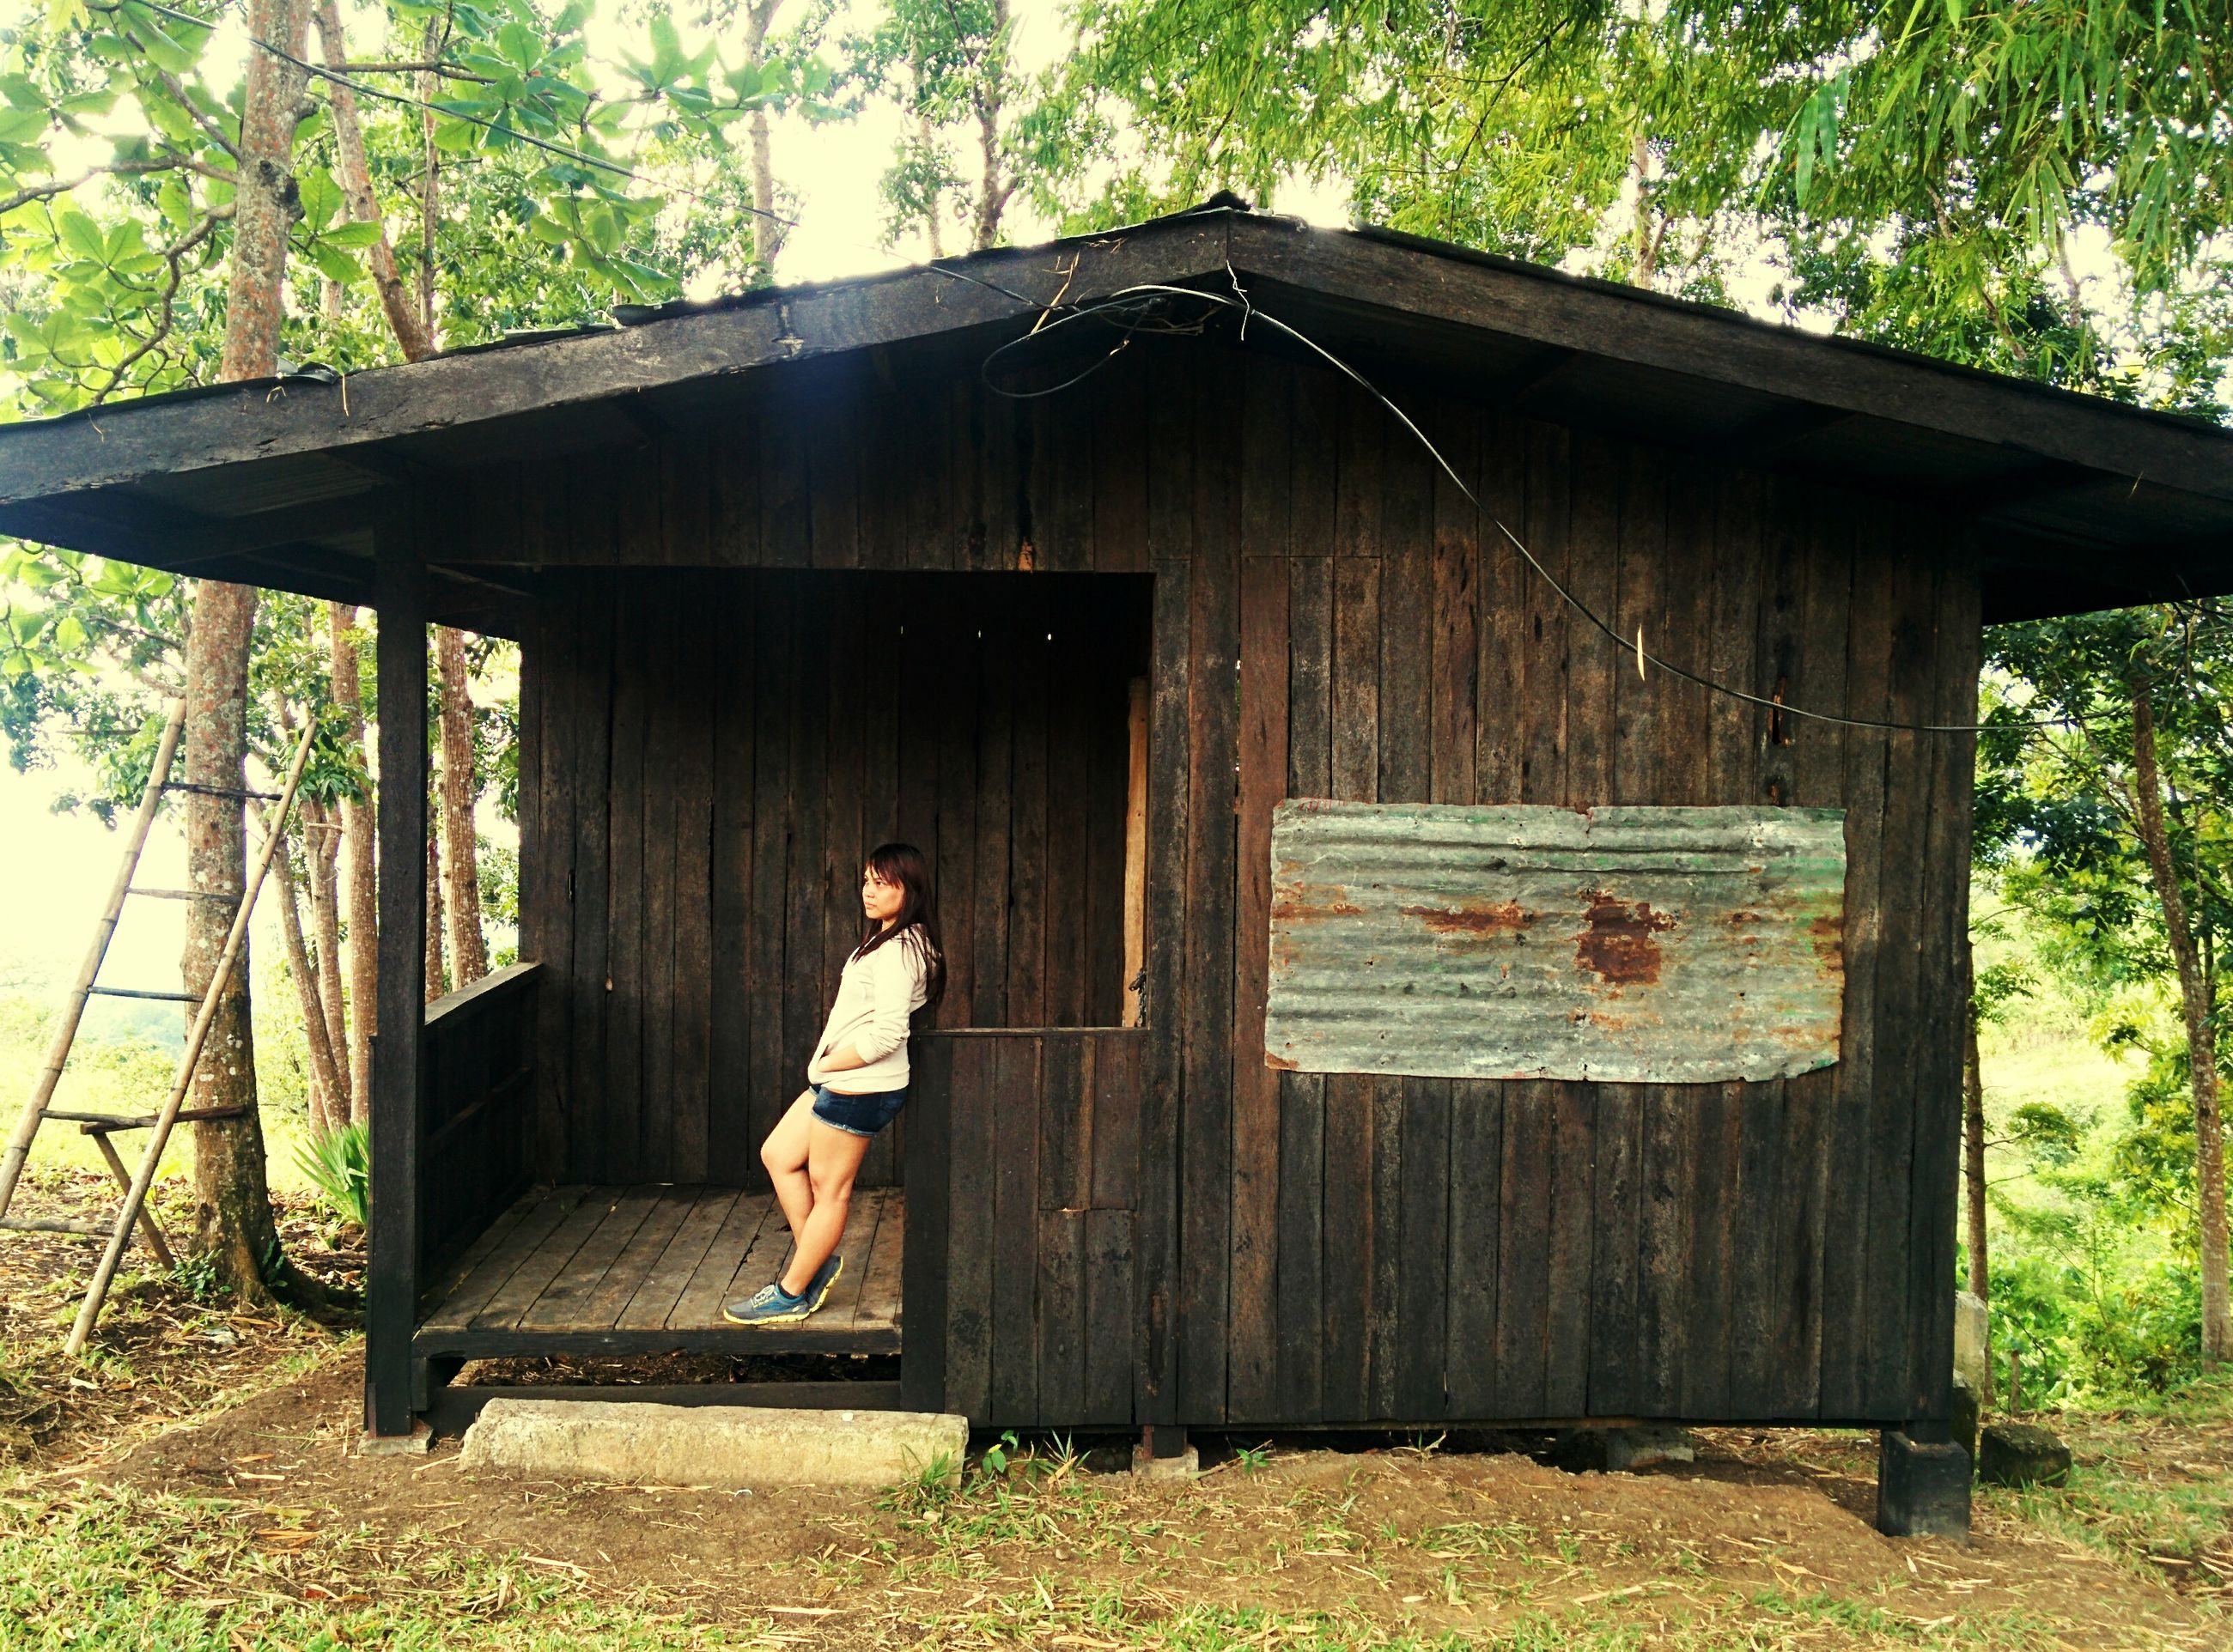 young adult, lifestyles, leisure activity, full length, tree, wood - material, casual clothing, relaxation, sitting, person, house, grass, built structure, young women, standing, architecture, day, side view